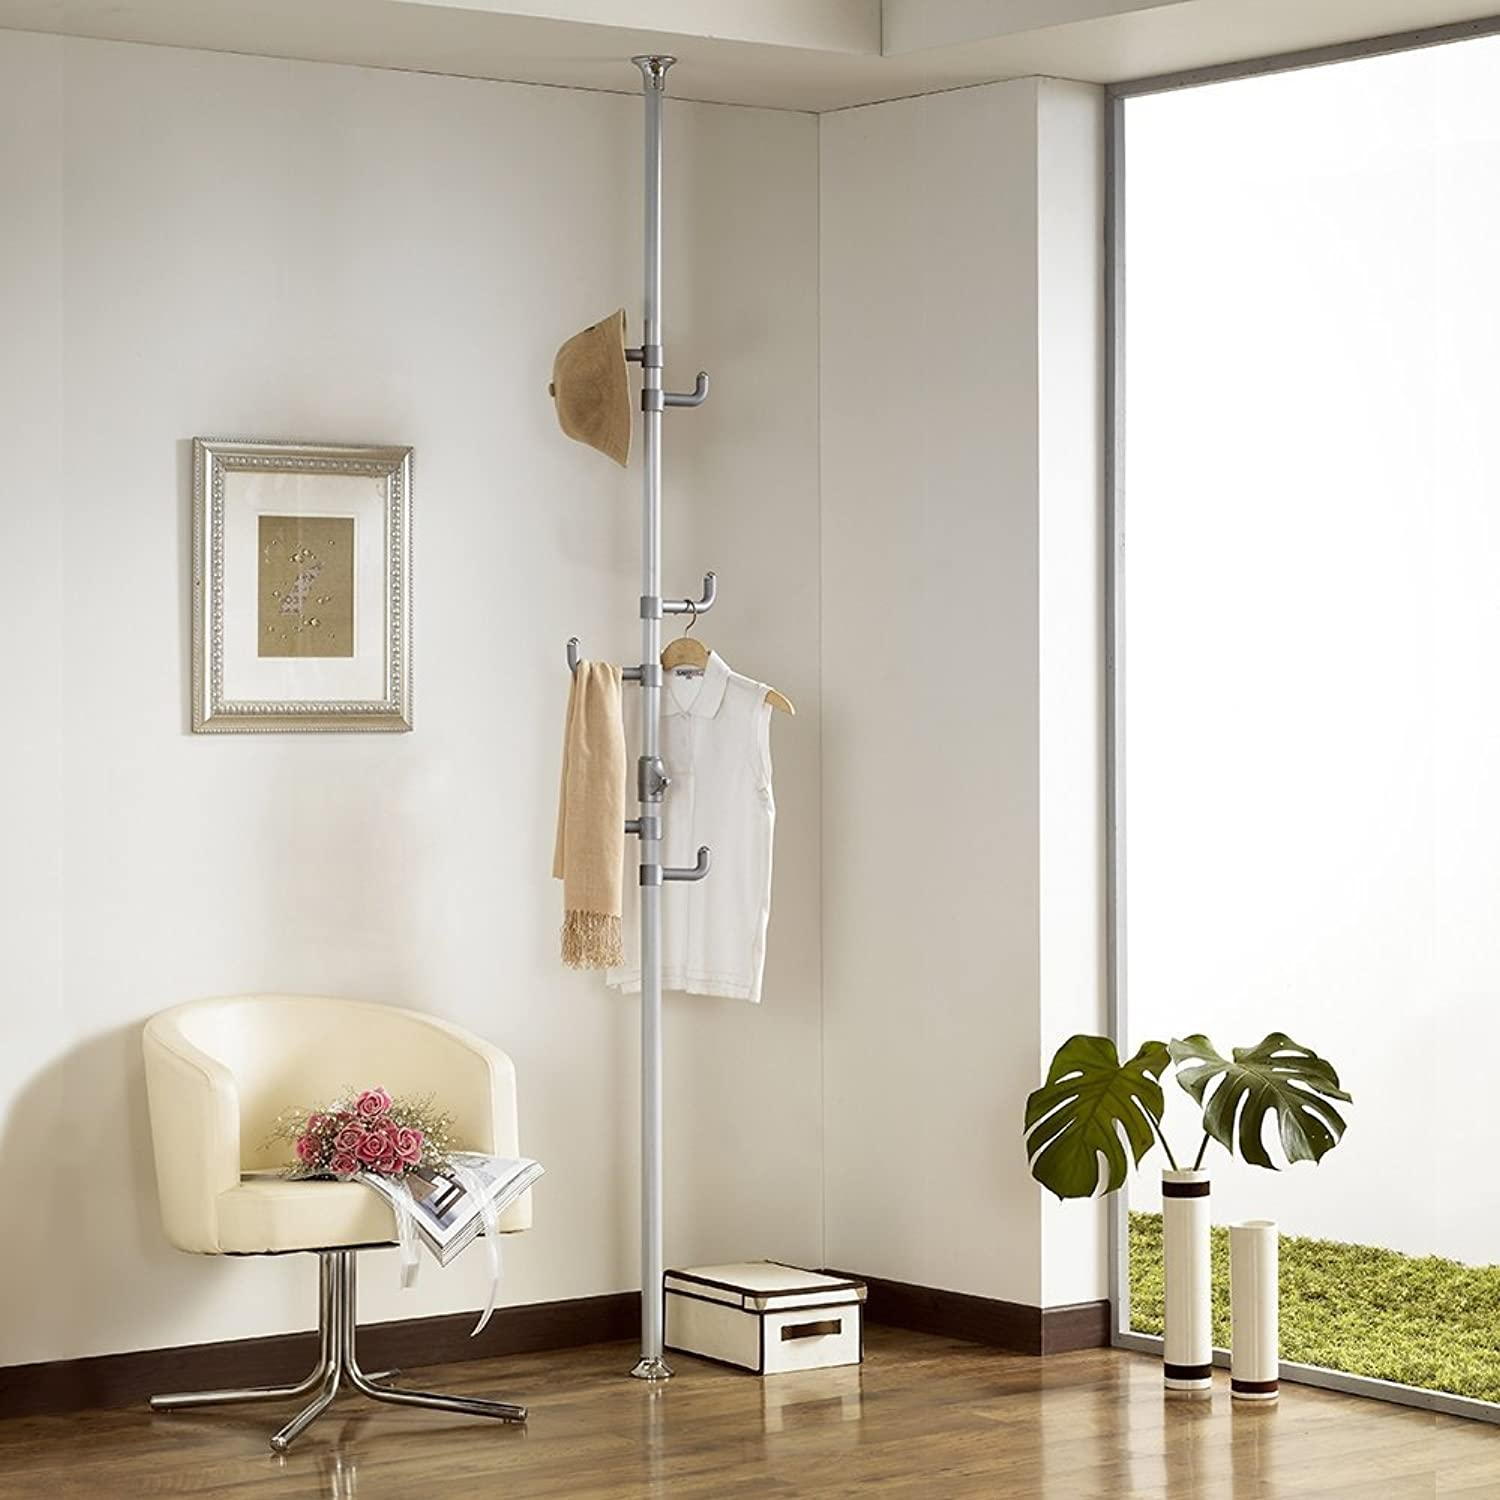 Prince Hanger One-touch Coat Rack, Silver, Steel